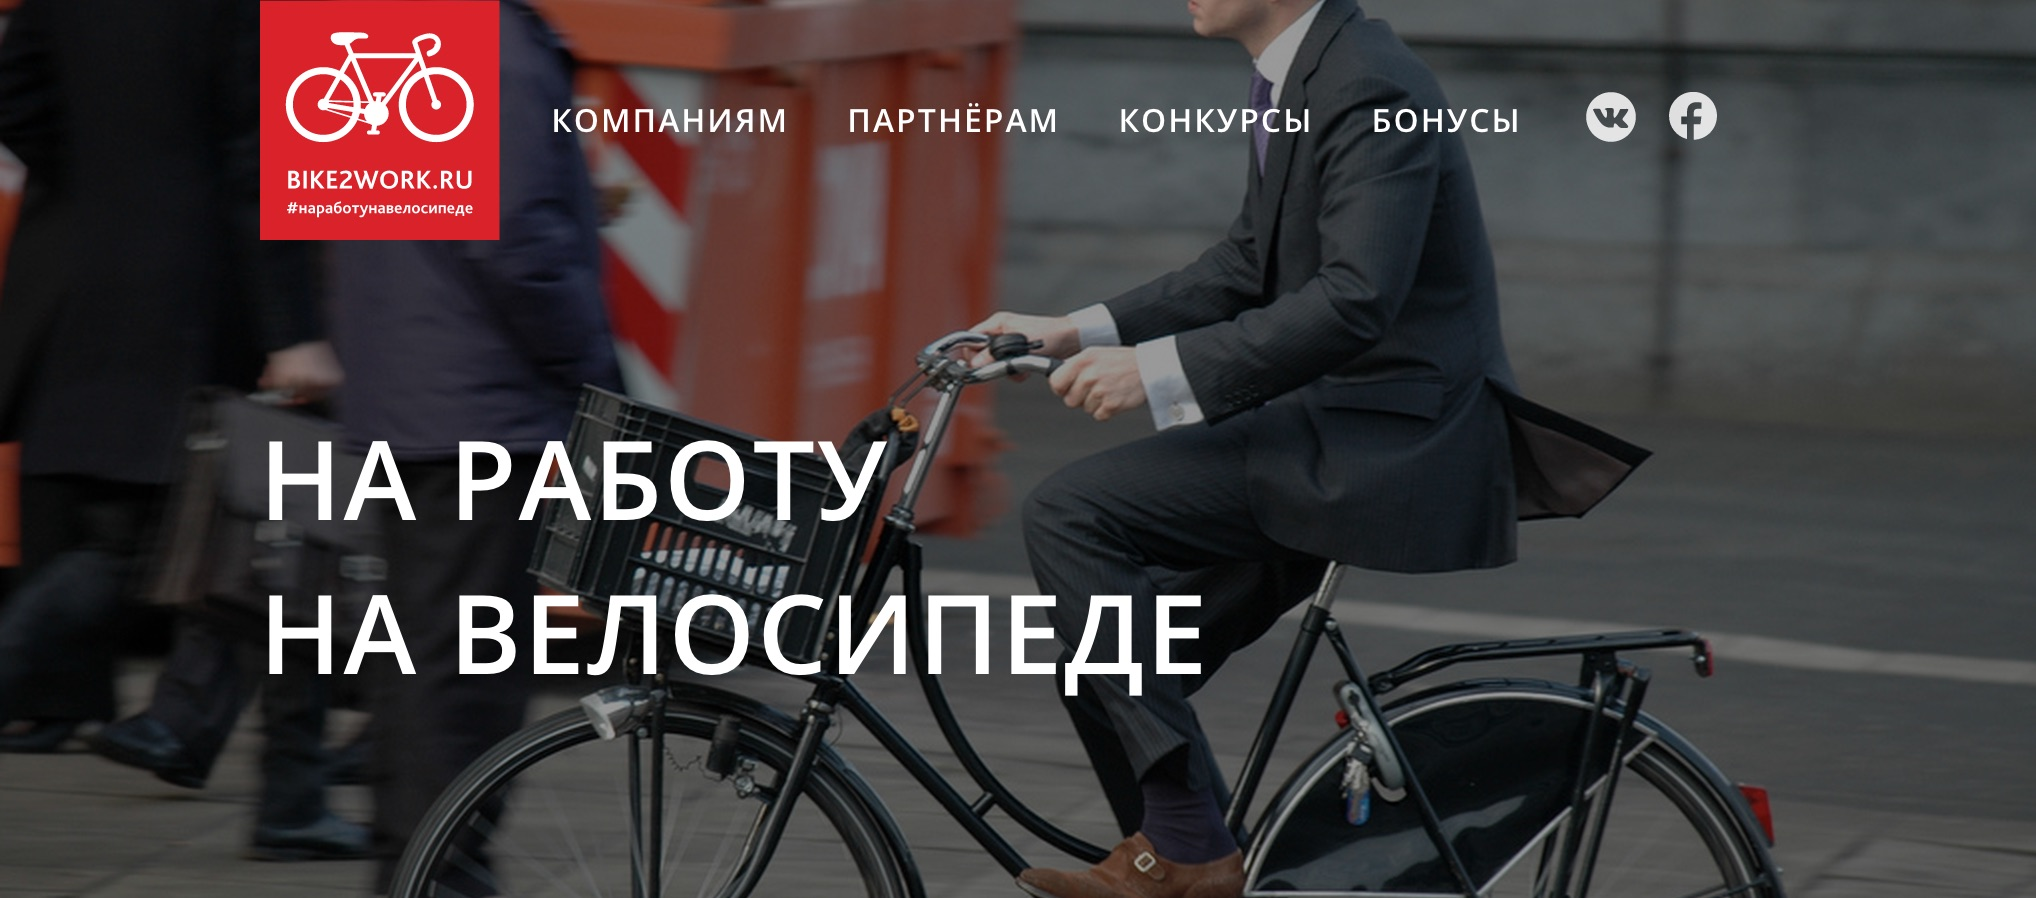 Bike to Work website, man in suit on a black bycicle